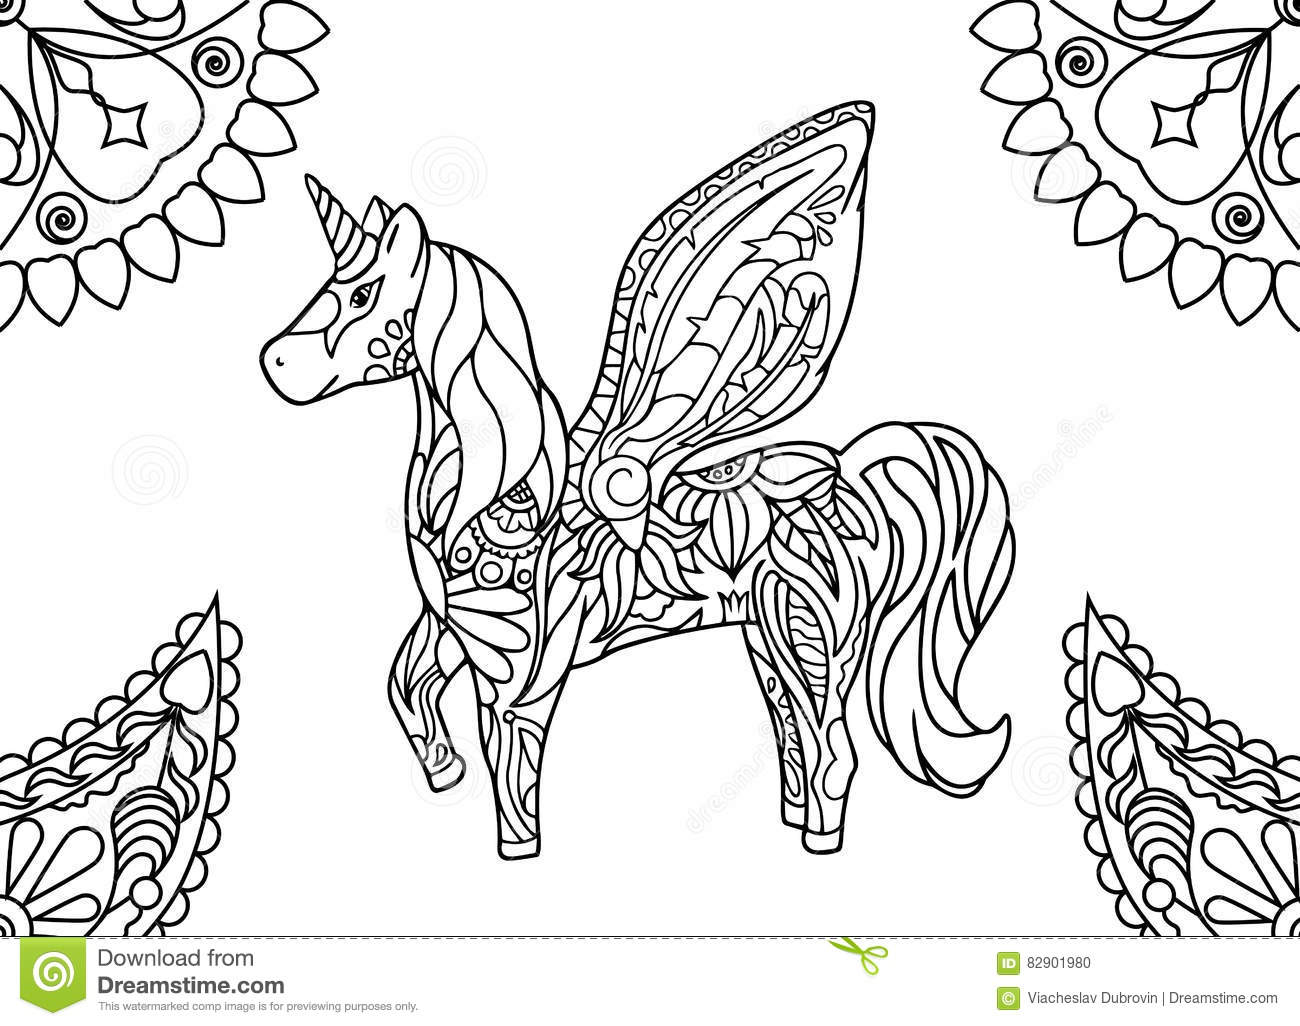 Colouring Pages Animal Mandalas Clipart , Png Download - Animal ... | 1026x1300